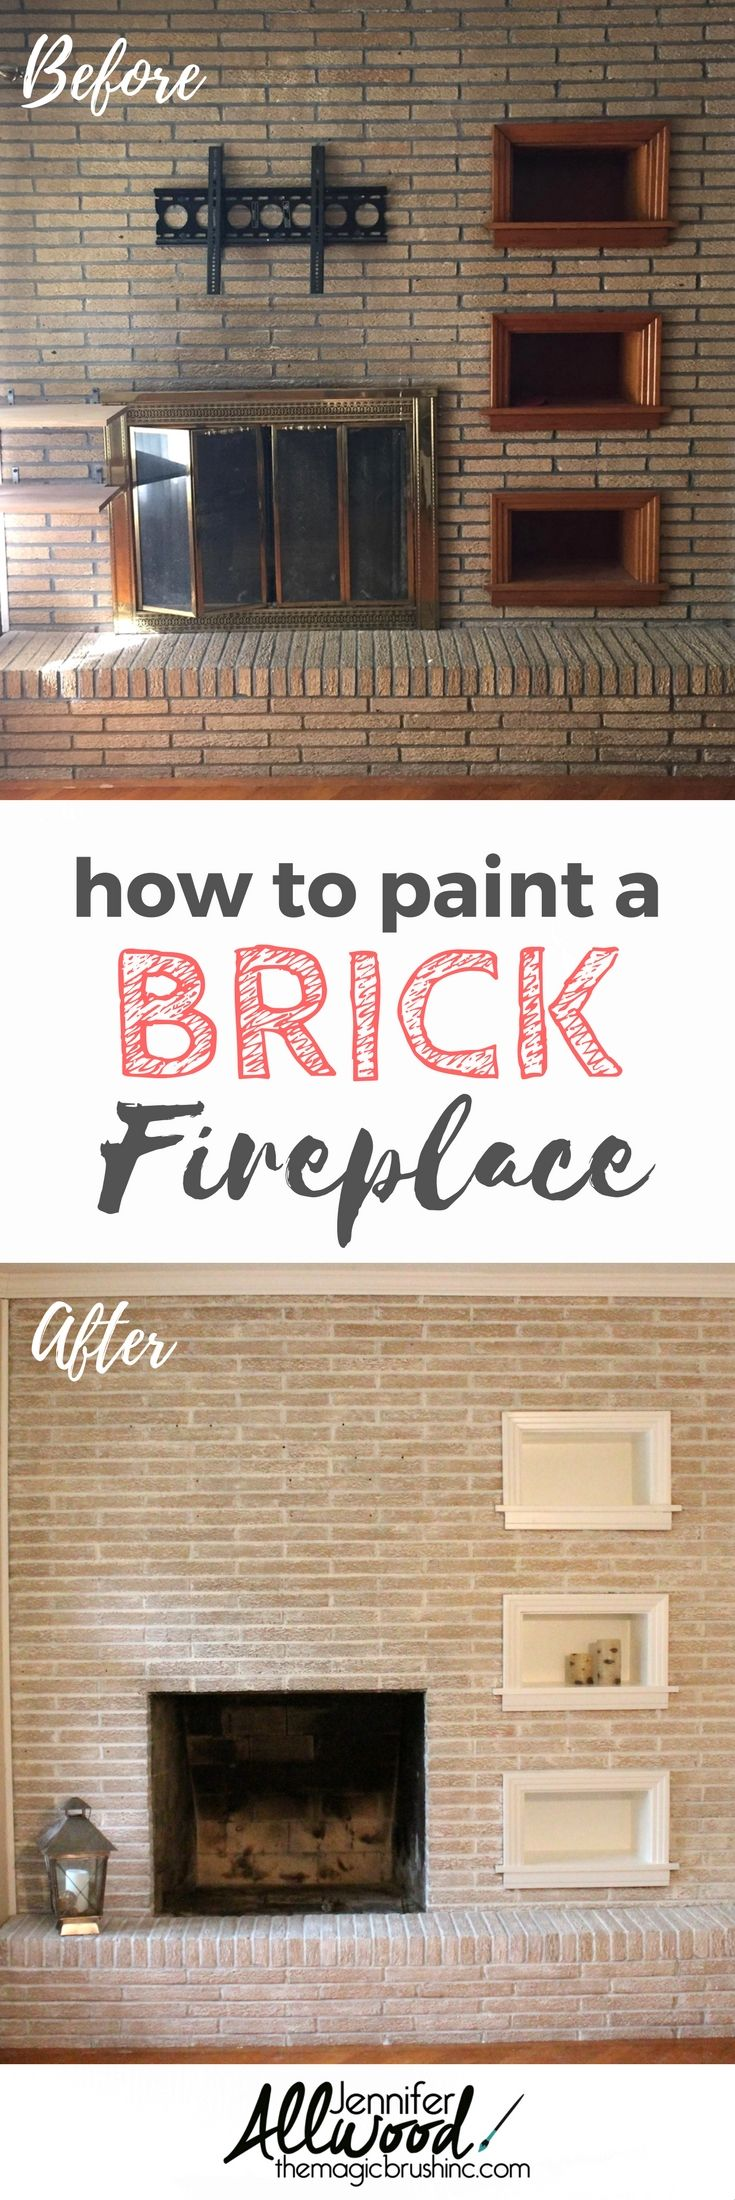 19 best fireplace makeover images on pinterest fireplace ideas